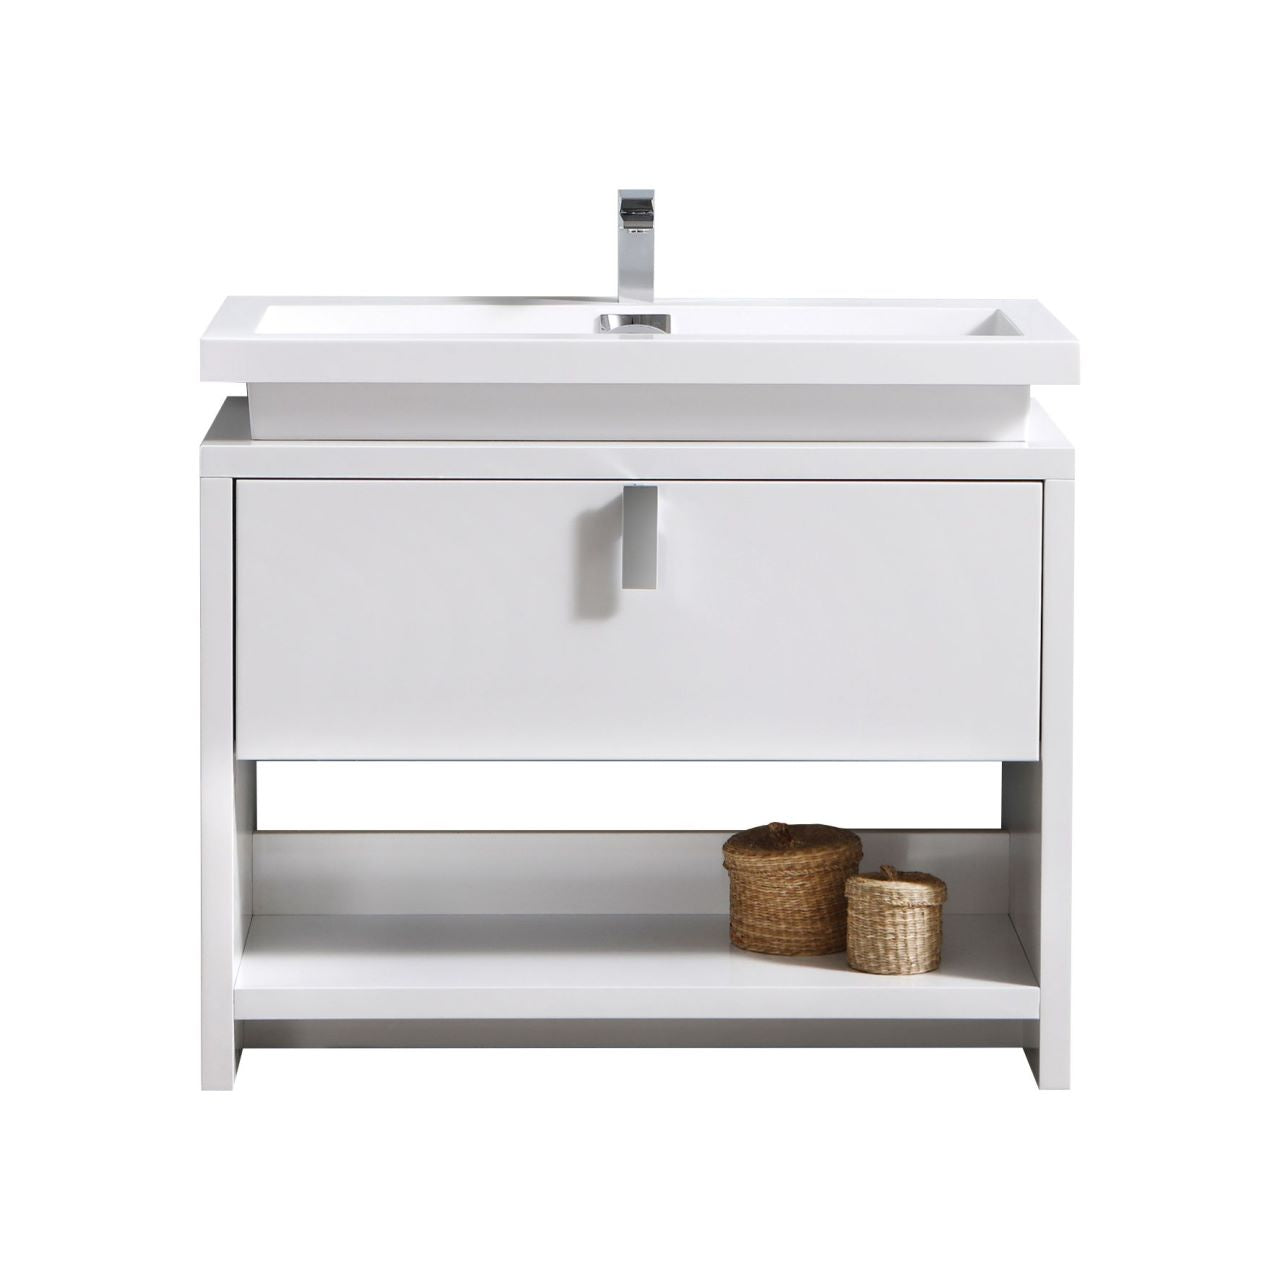 "LEVI- 40"" High Gloss White, Floor Standing Modern Bathroom Vanity With Cubby Hole - Vanity Sale"